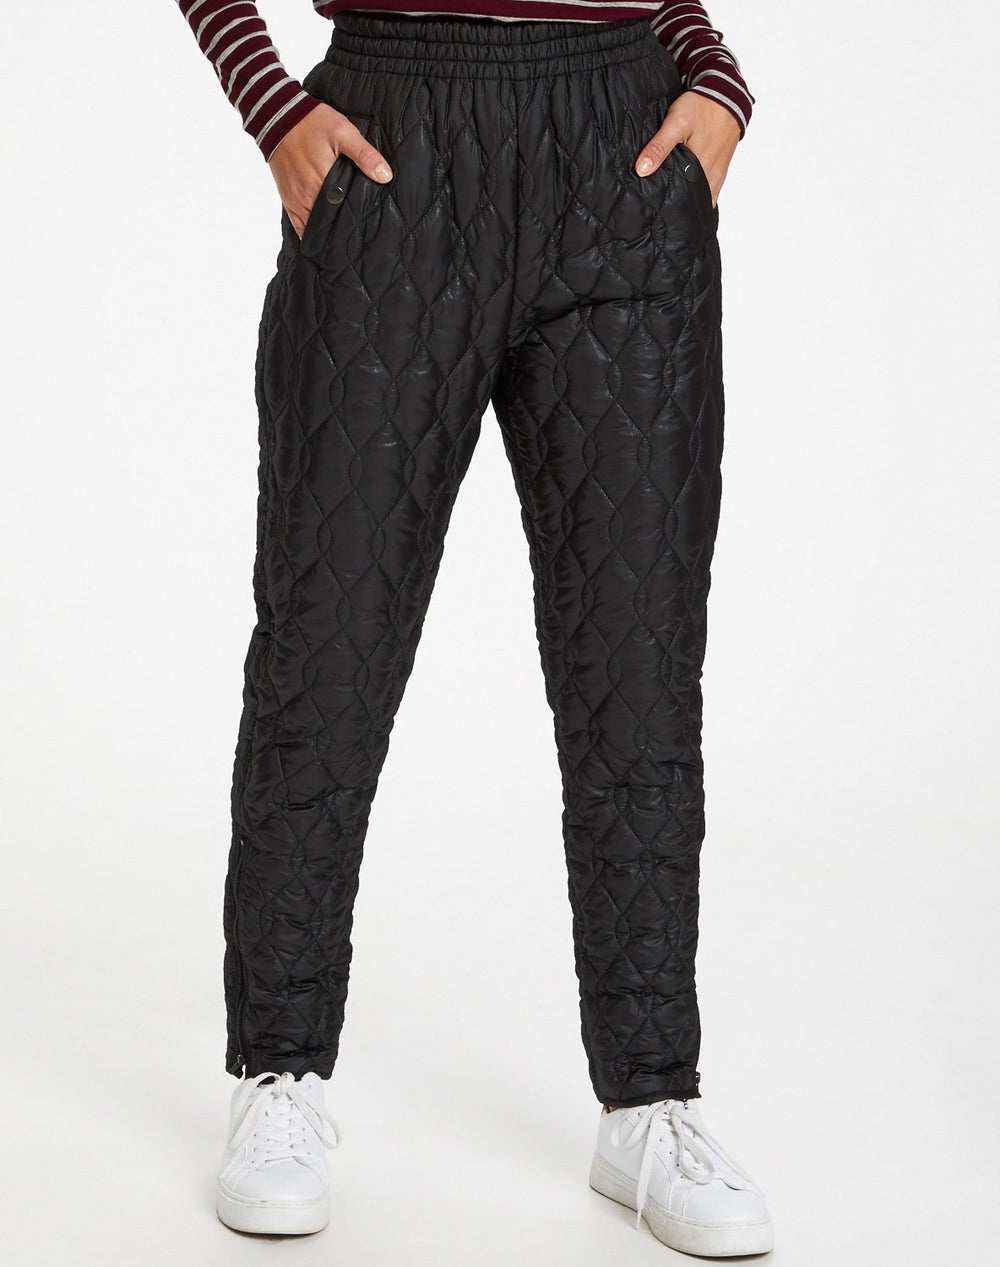 Kaffe KAMina quilted pants black deep - Online-Mode